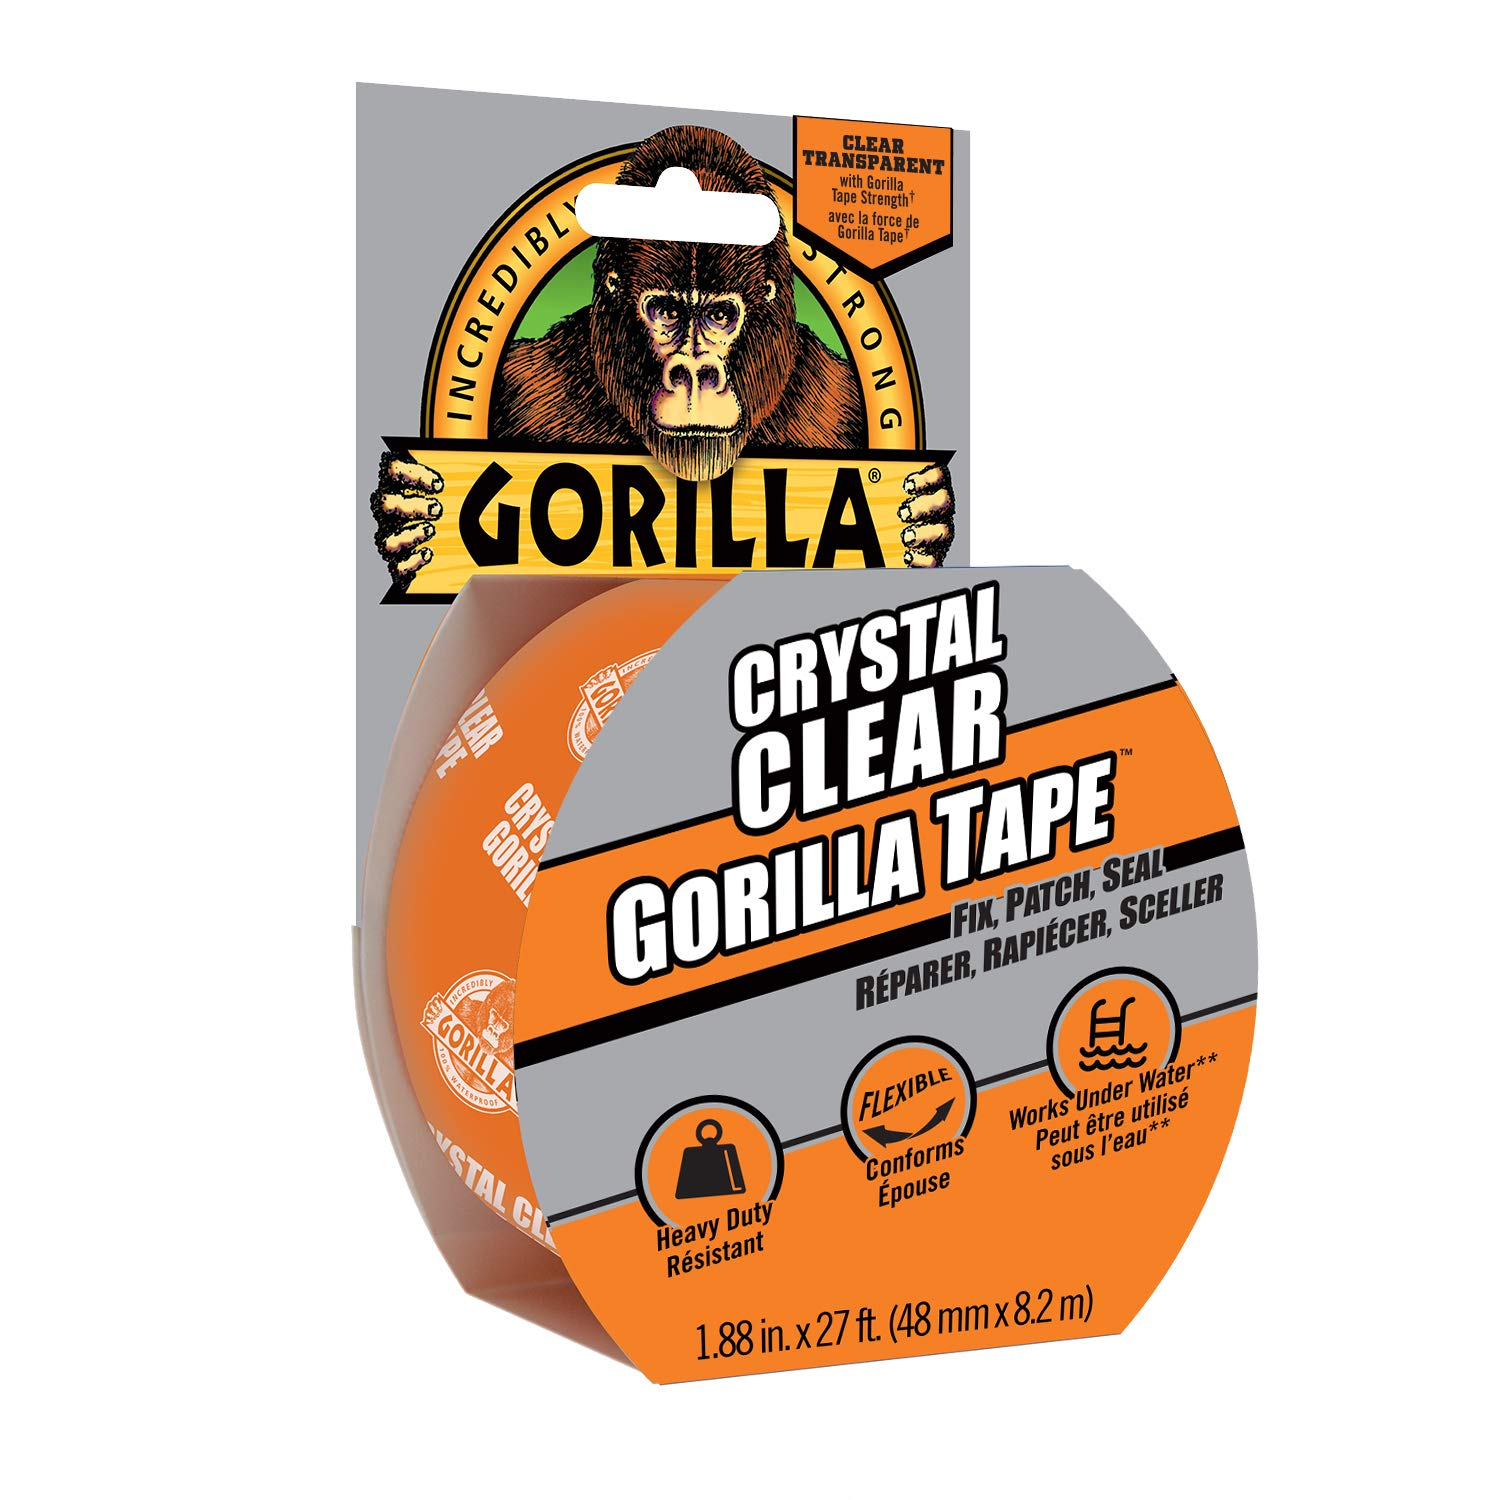 Crystal Clear Gorilla Tape, 8.2 m product image